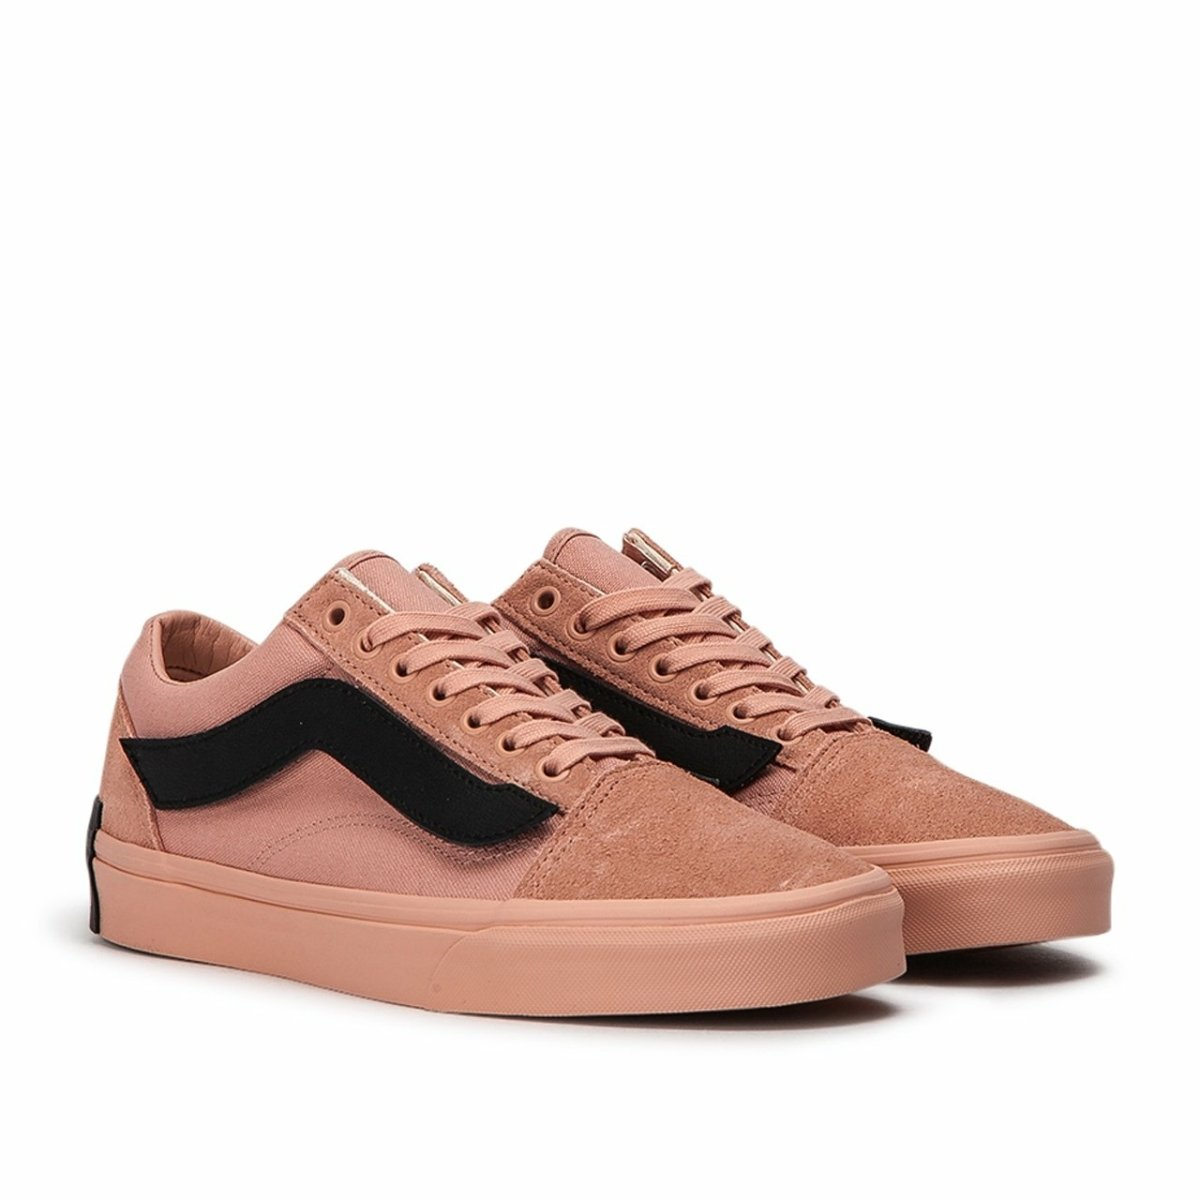 a7f1111adc7 2128617-vans-x-purlicue-old-skool-lx-year-sneaker-vn0a38g1shh1.jpg